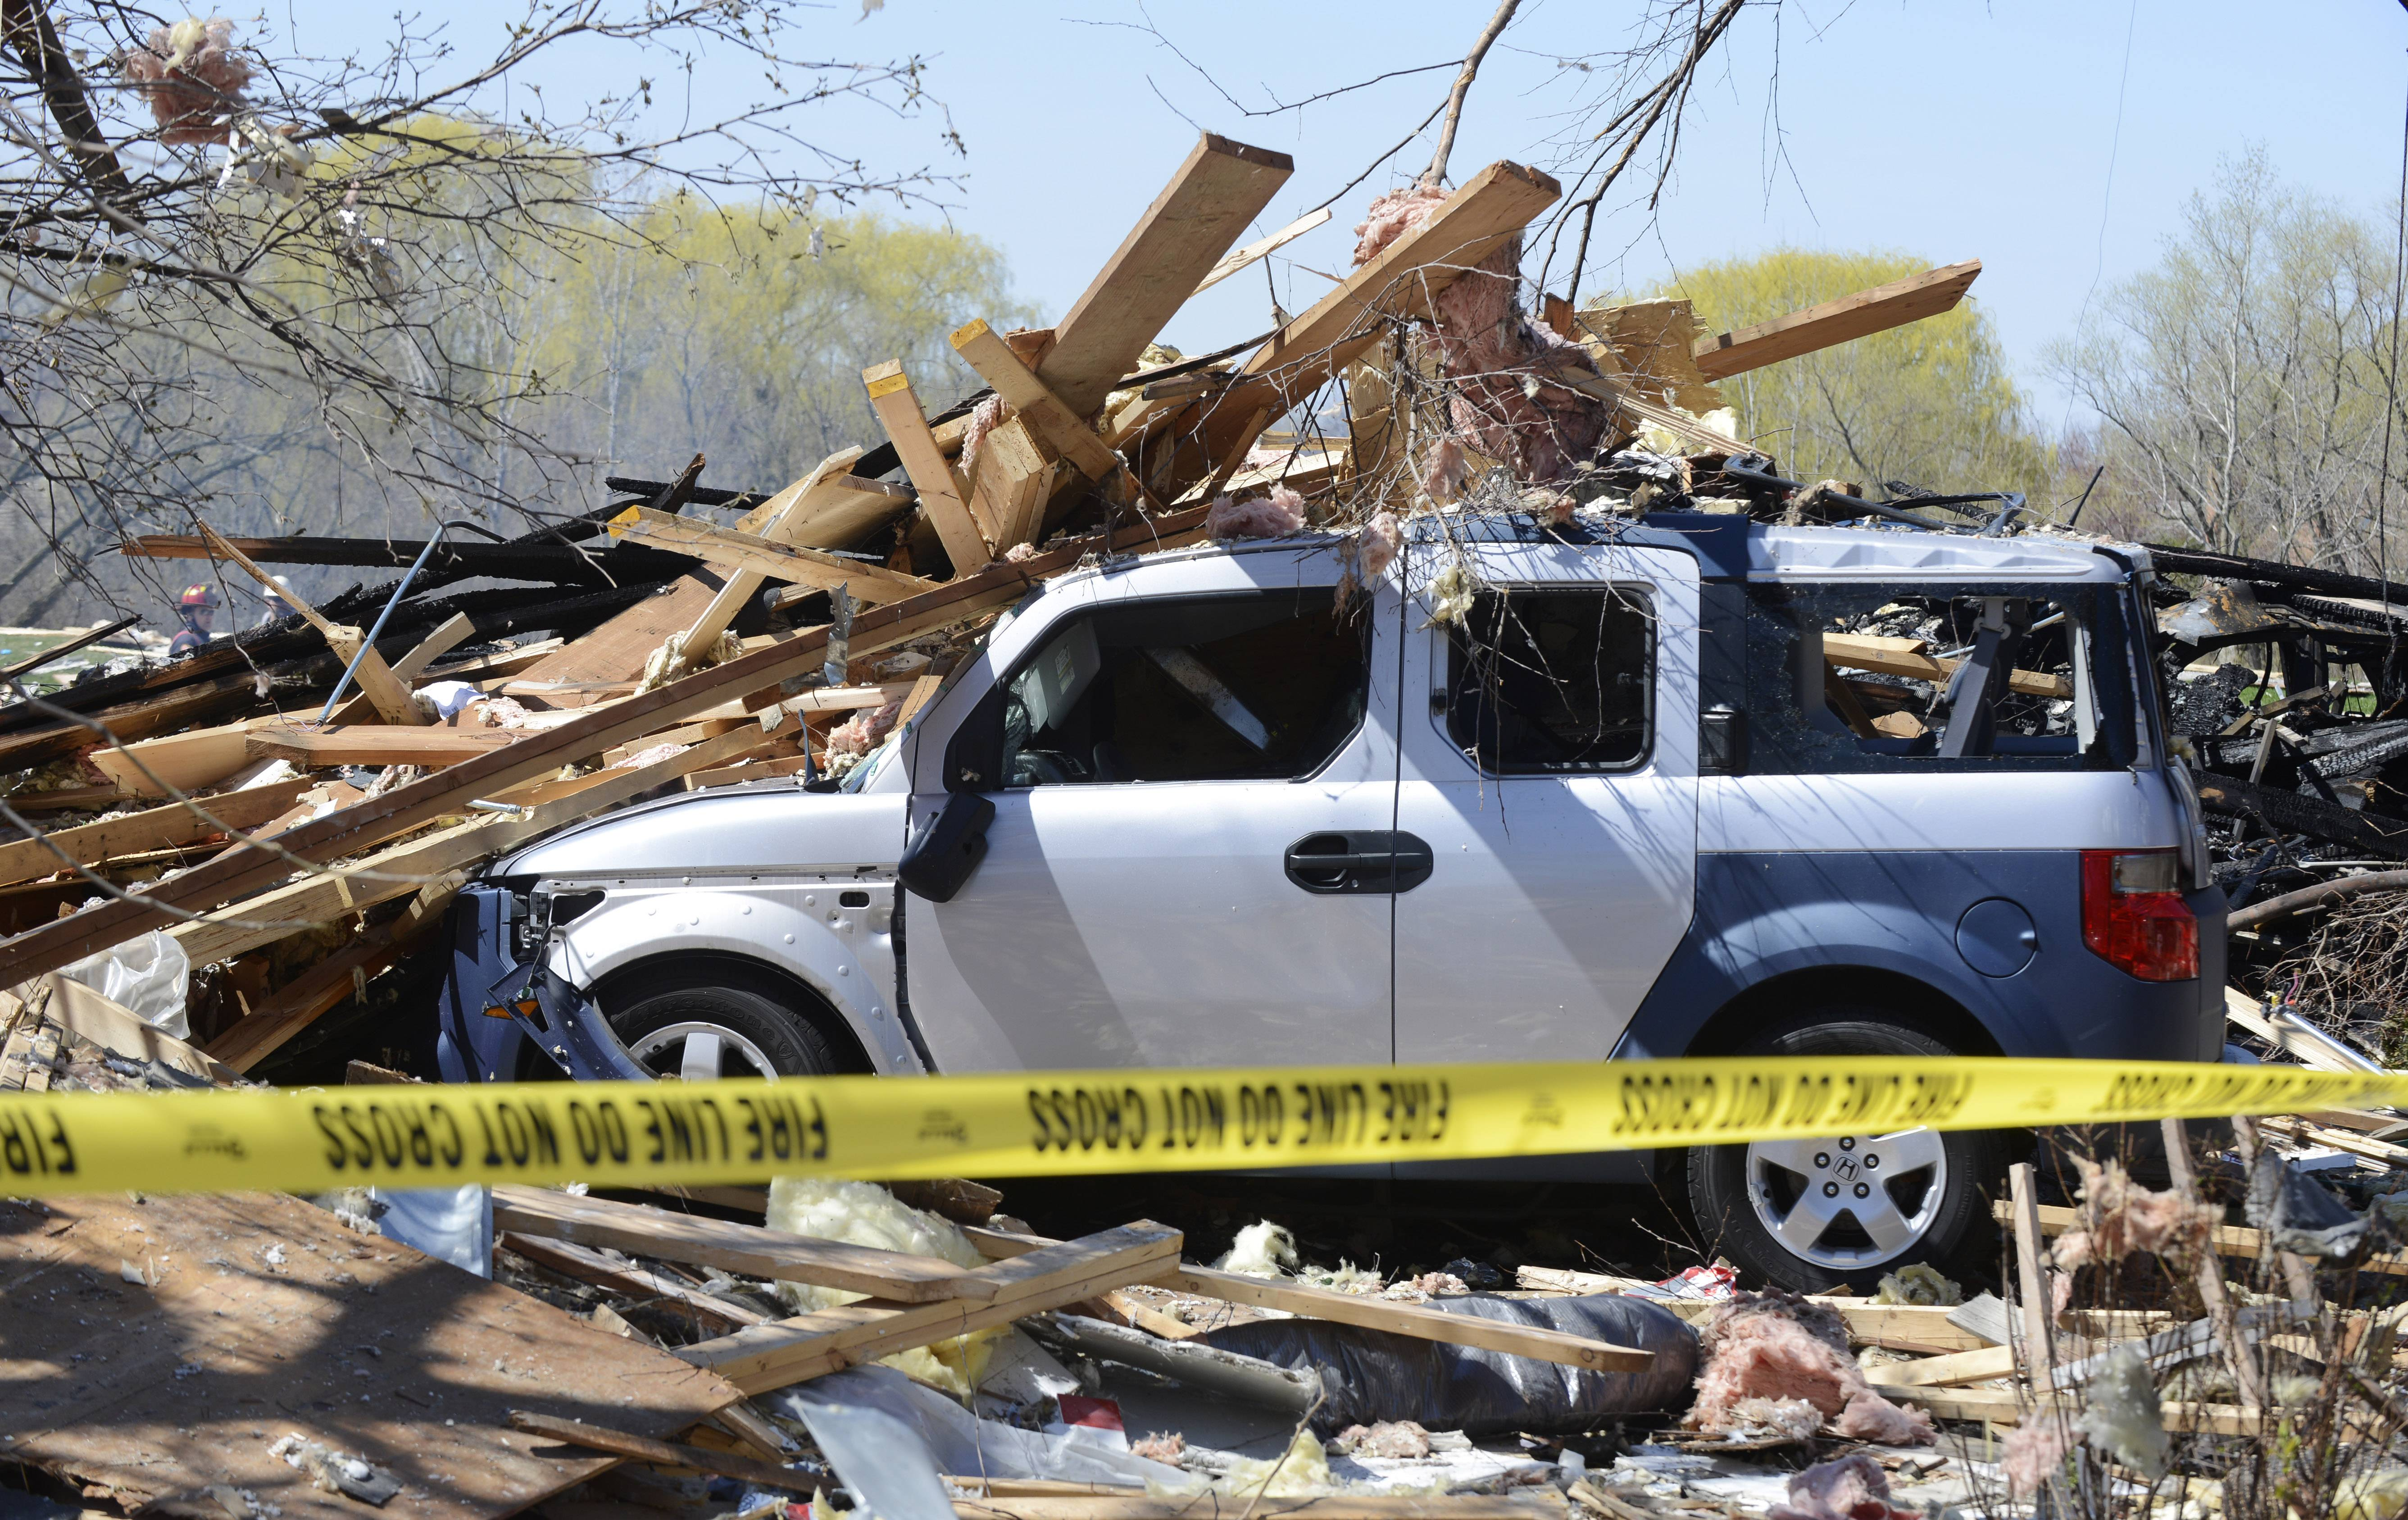 A car is littered with debris after the an explosion Friday night leveled a home in Long Grove. Investigators remained on the scene of the blast Monday, though they admit that the extent of the damage may keep them from discovering its exact cause.